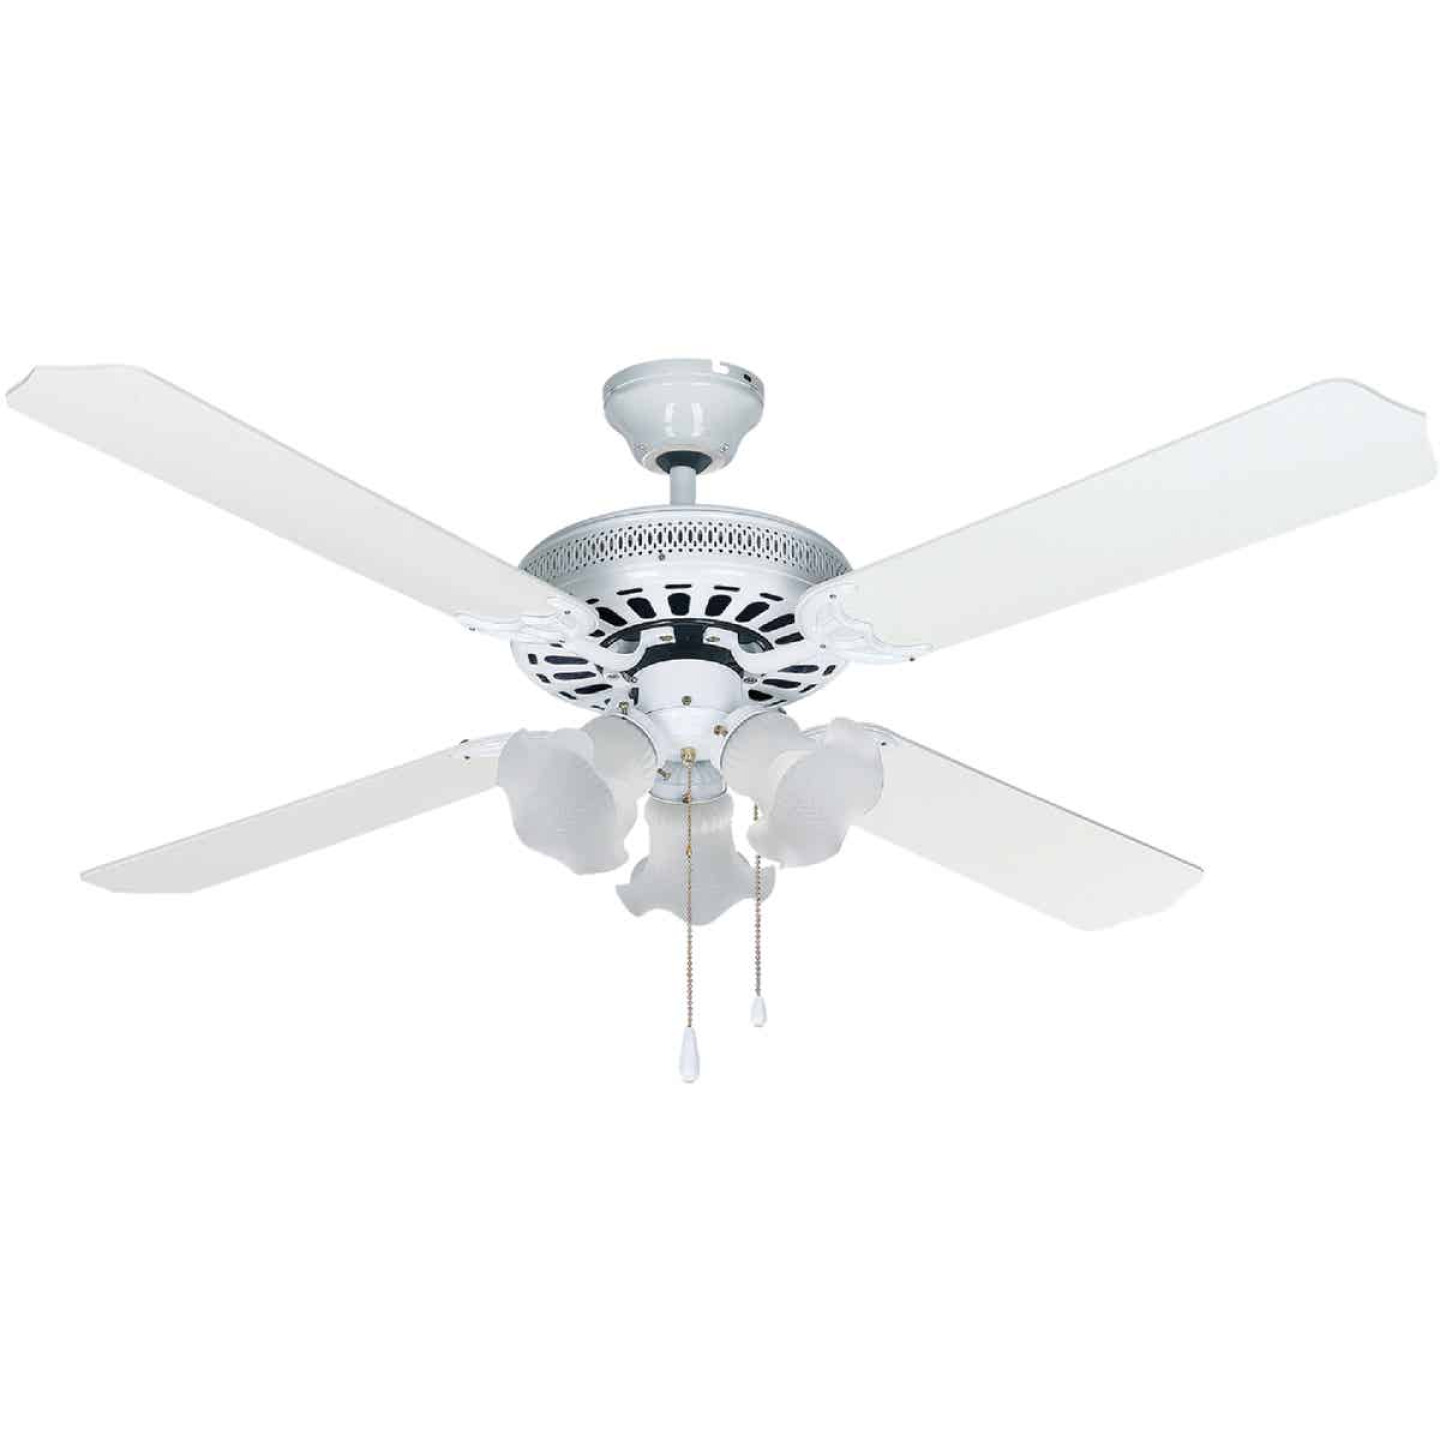 Home Impressions Chateau 52 In. White Ceiling Fan with Light Kit Image 1